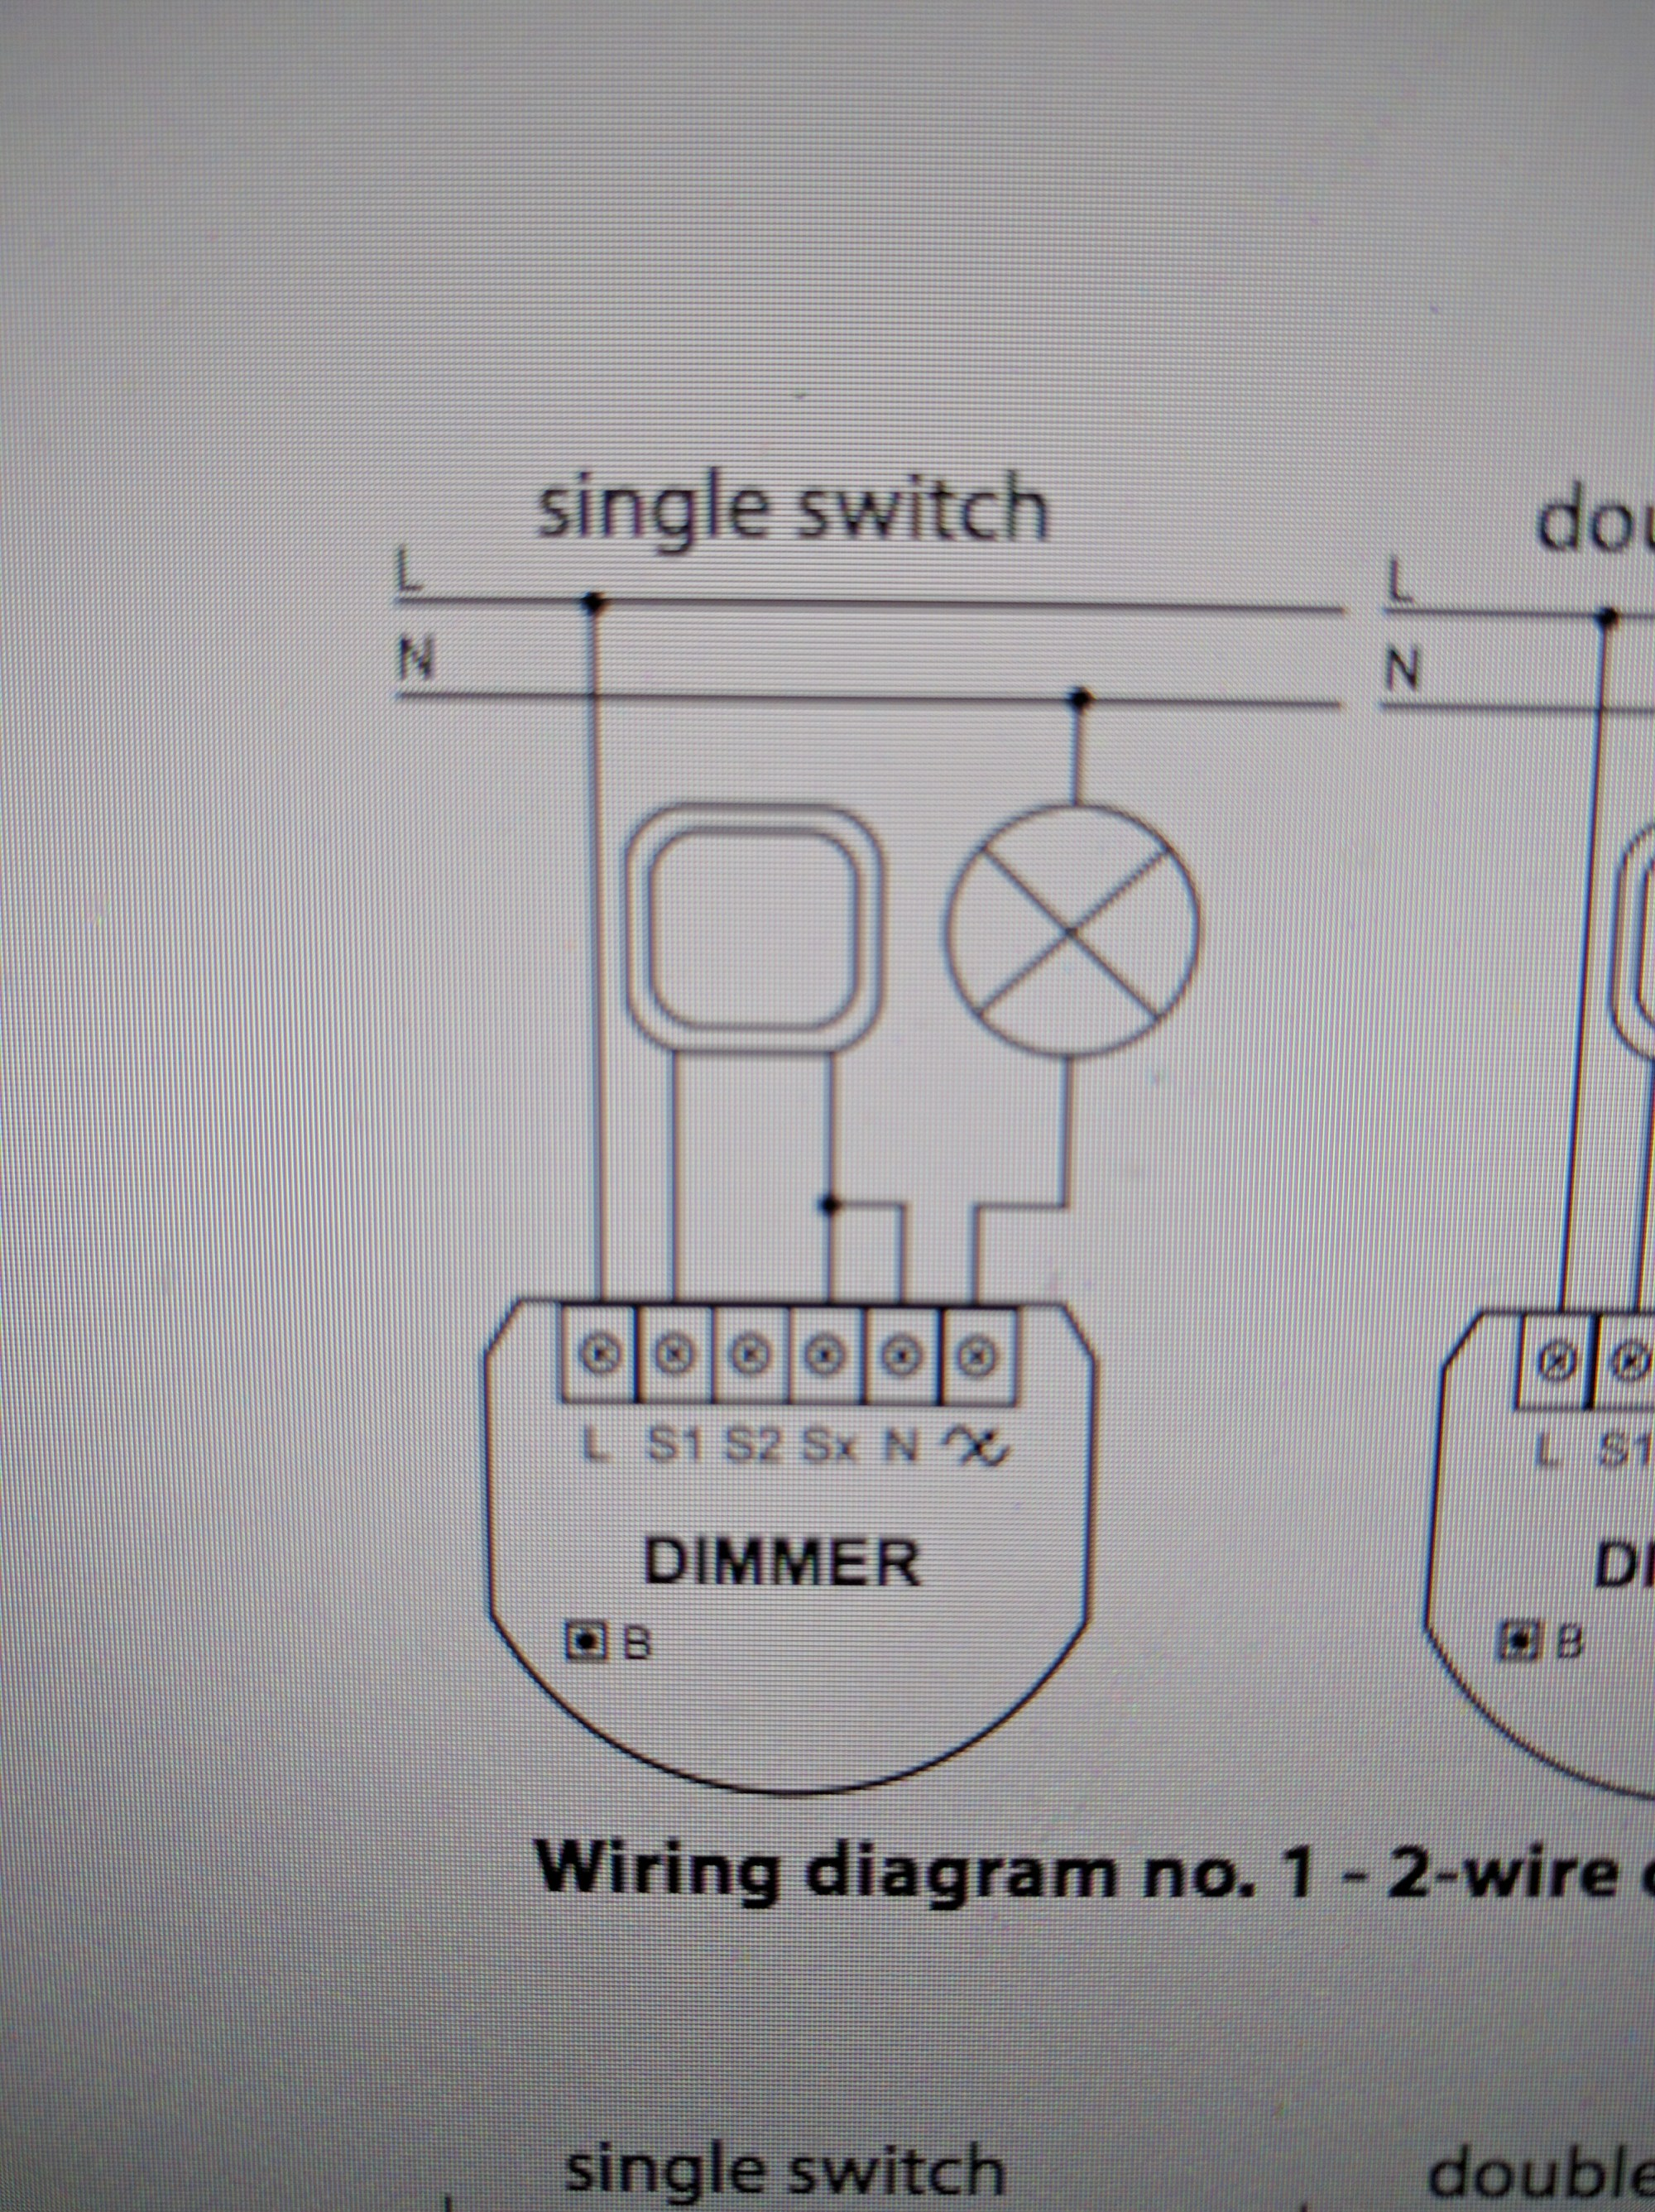 hight resolution of as previously stated i live in an older house that only had 2 wires in the light box the line and load no neutral like you would see in a newer home